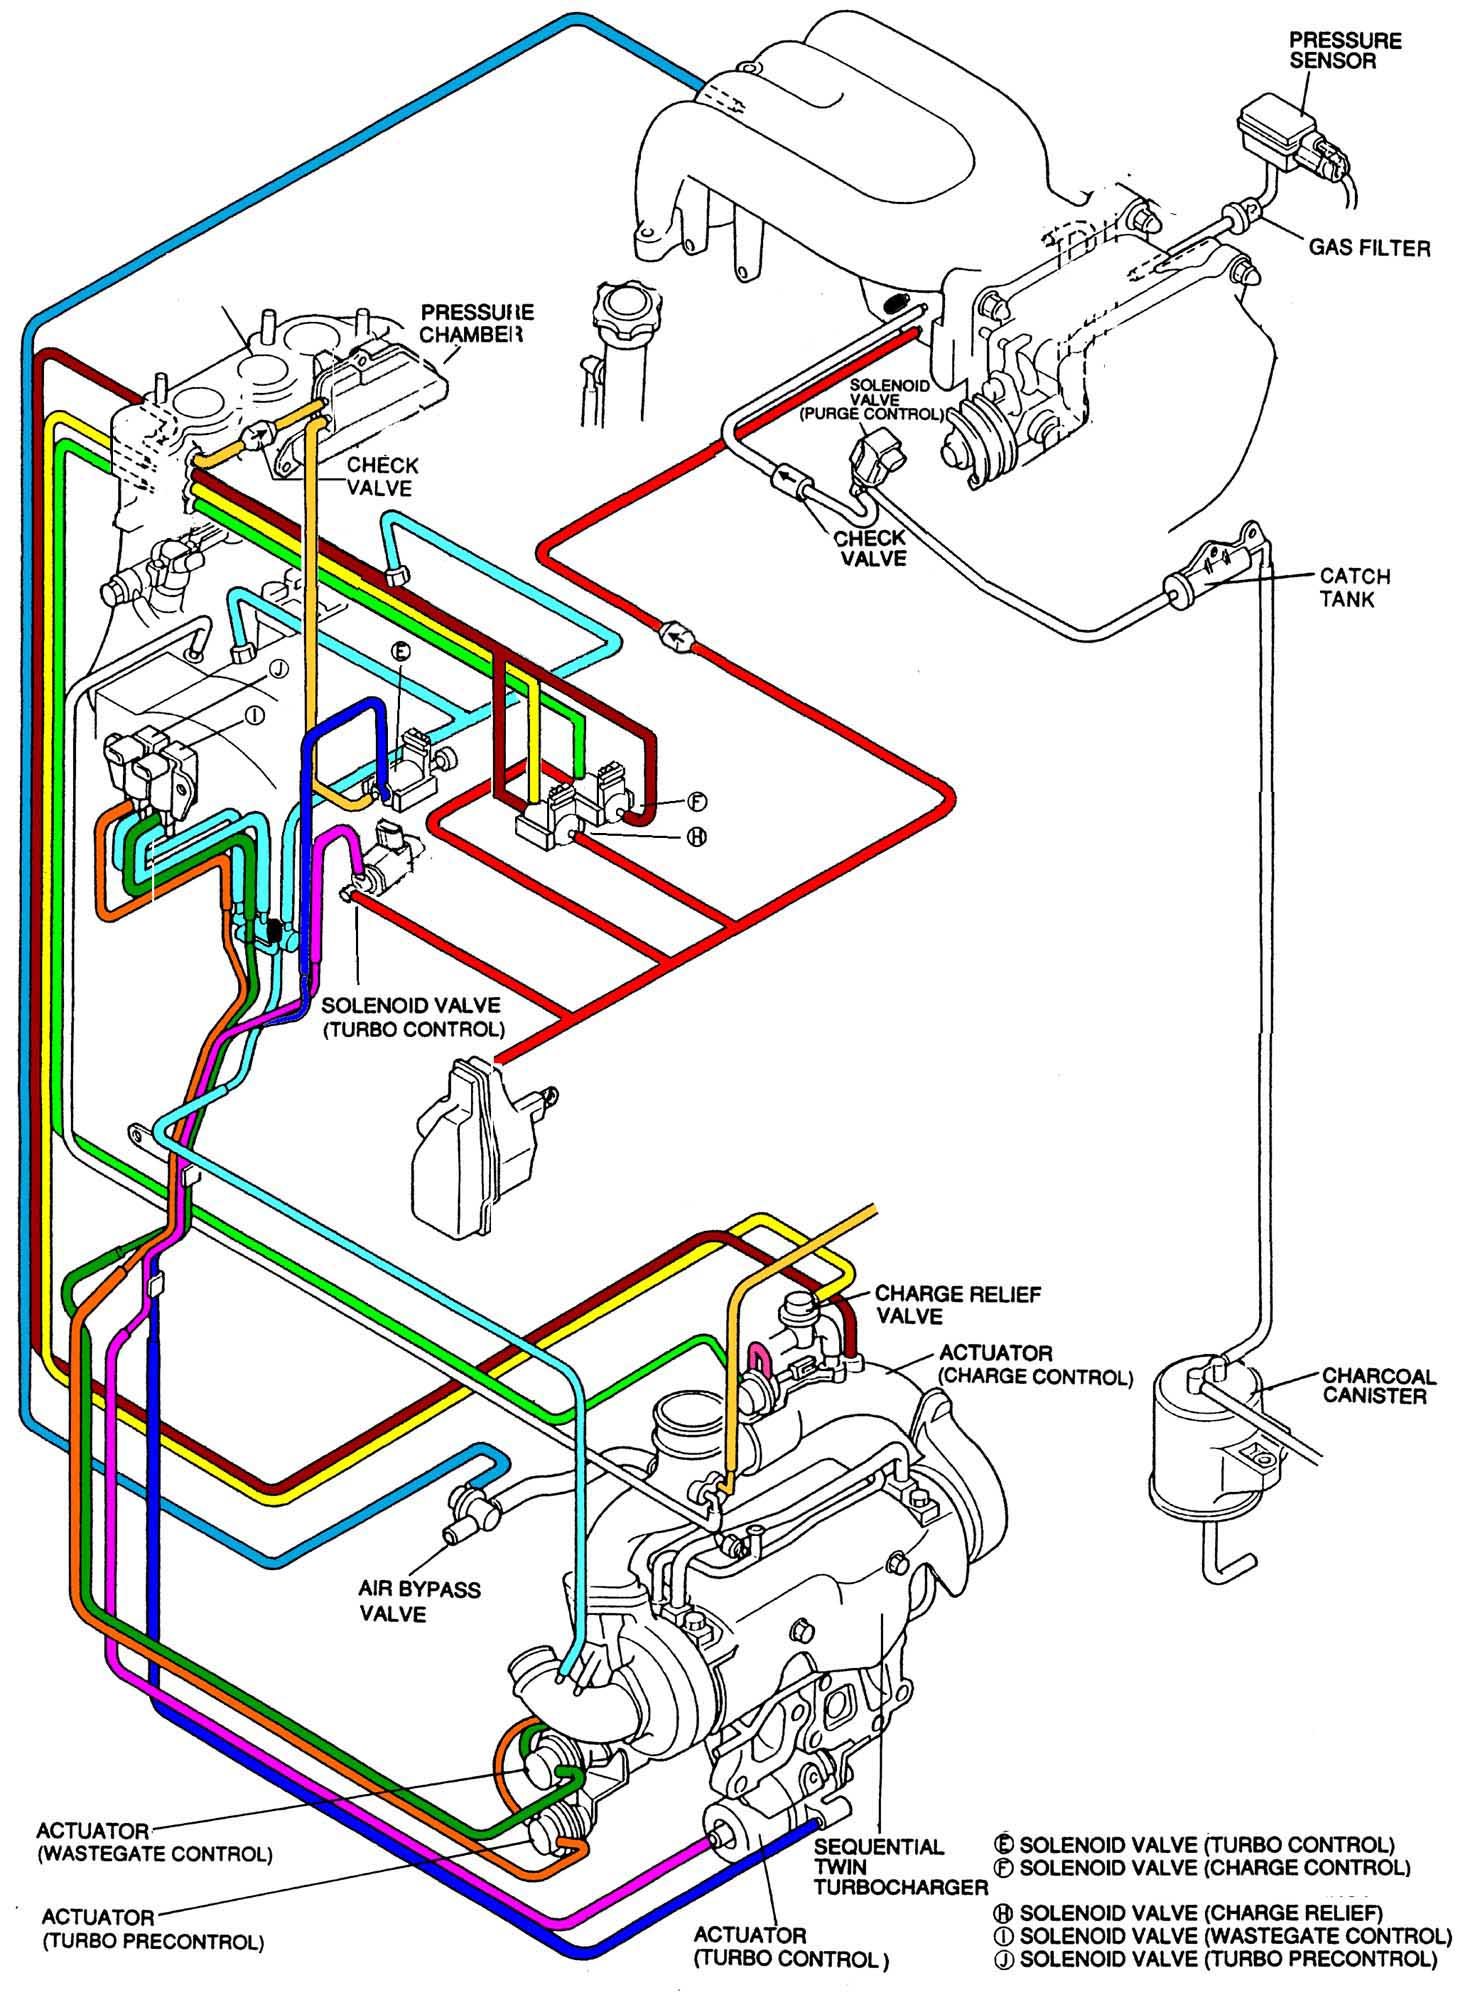 Turbo System Simplification 93 Mazda Rx 7 Wiring Harness